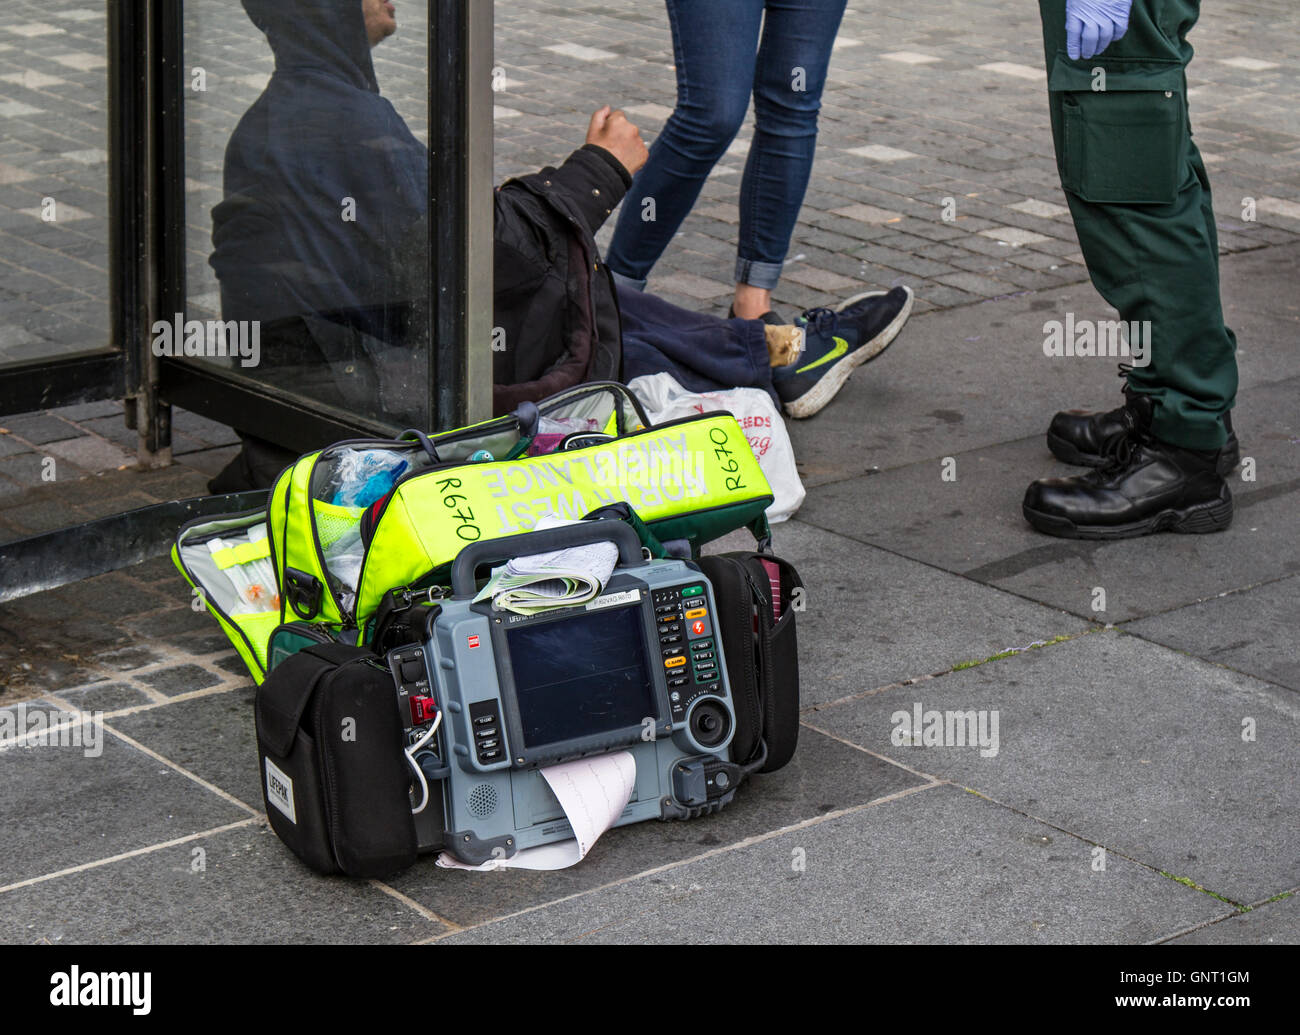 First responder giving medical treatment to seated person in Williamson Square, Liverpool, Merseyside, UK Stock Photo